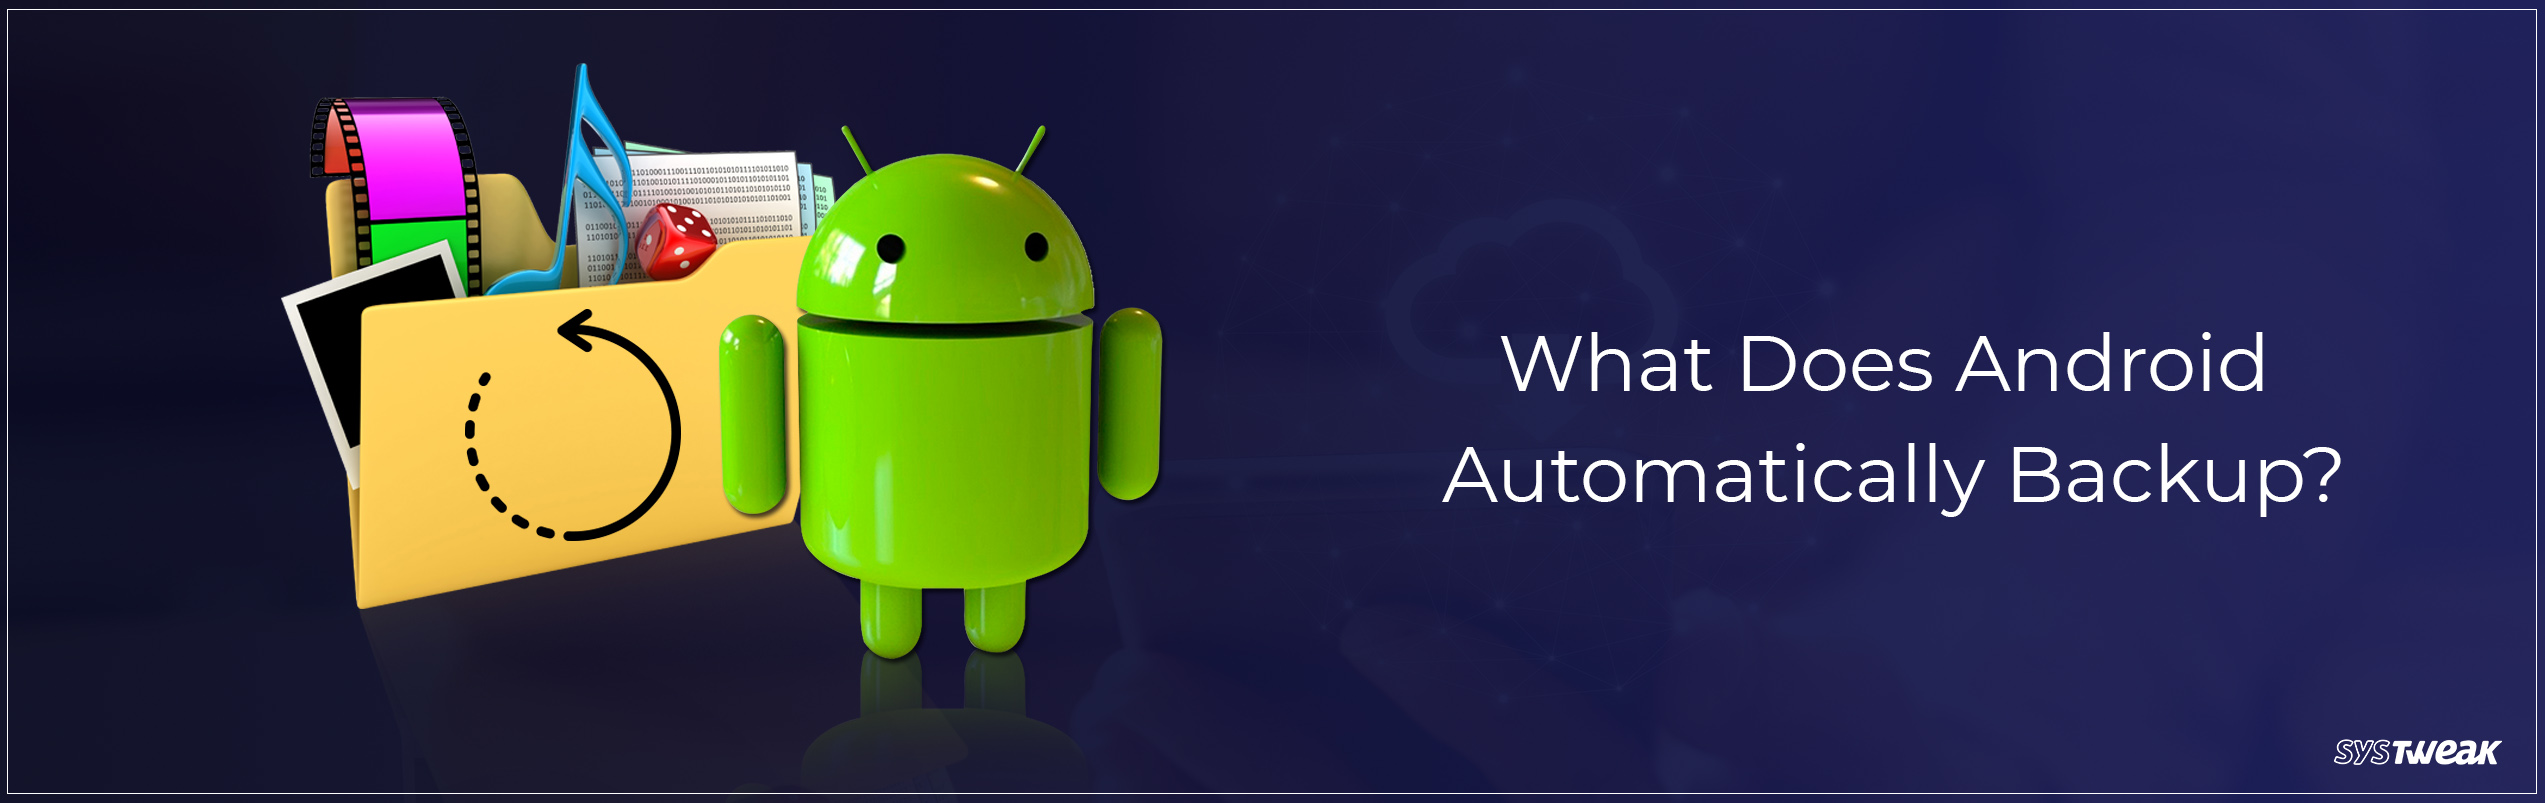 What Data Does Android Automatically Back Up?